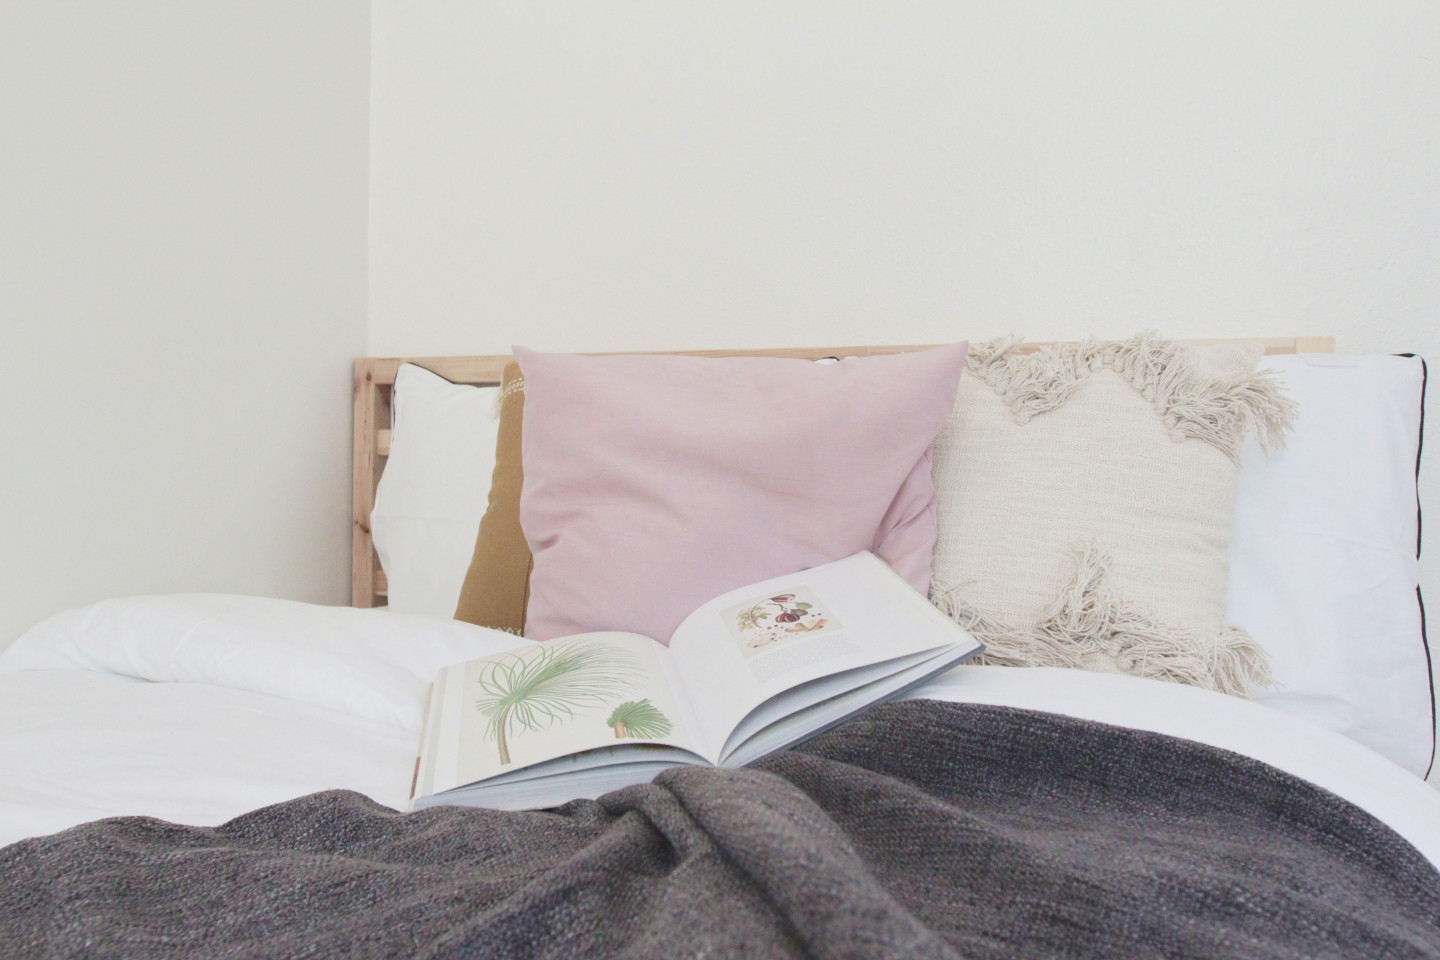 Pink and white bed, white comforter